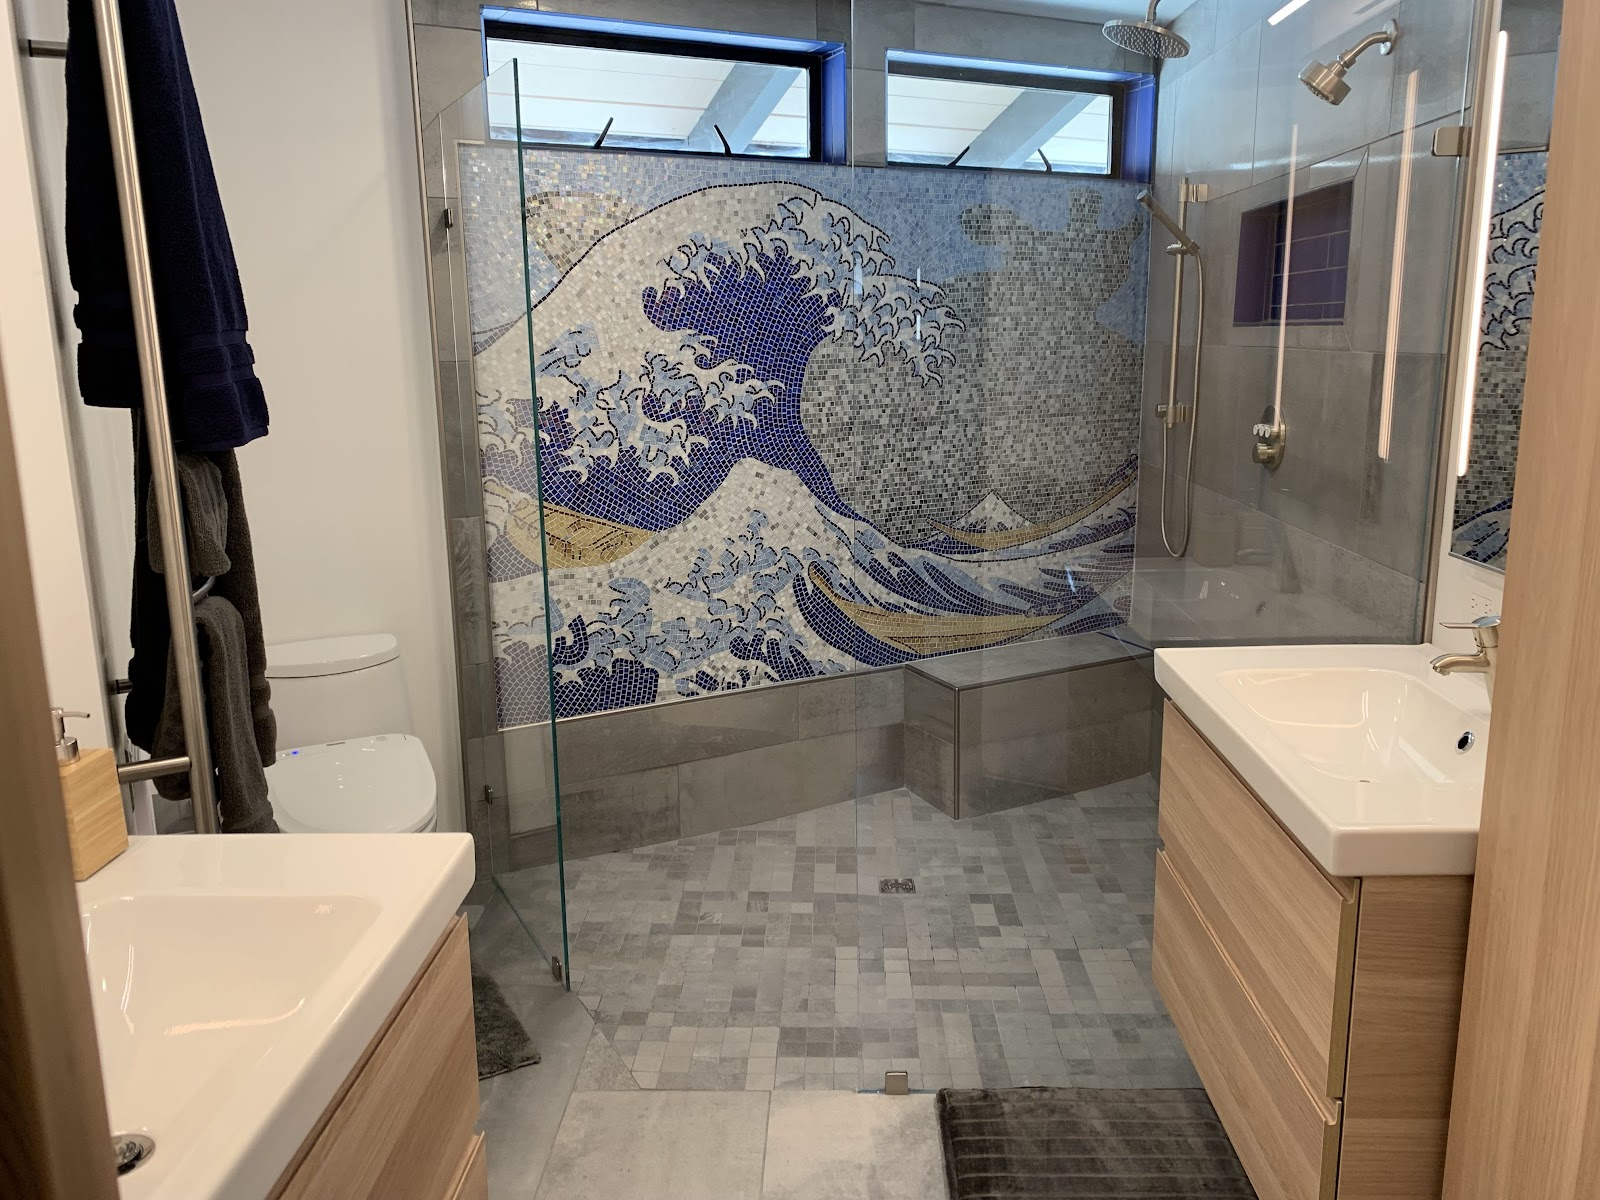 The Great Wave Mosaic by Mozaico